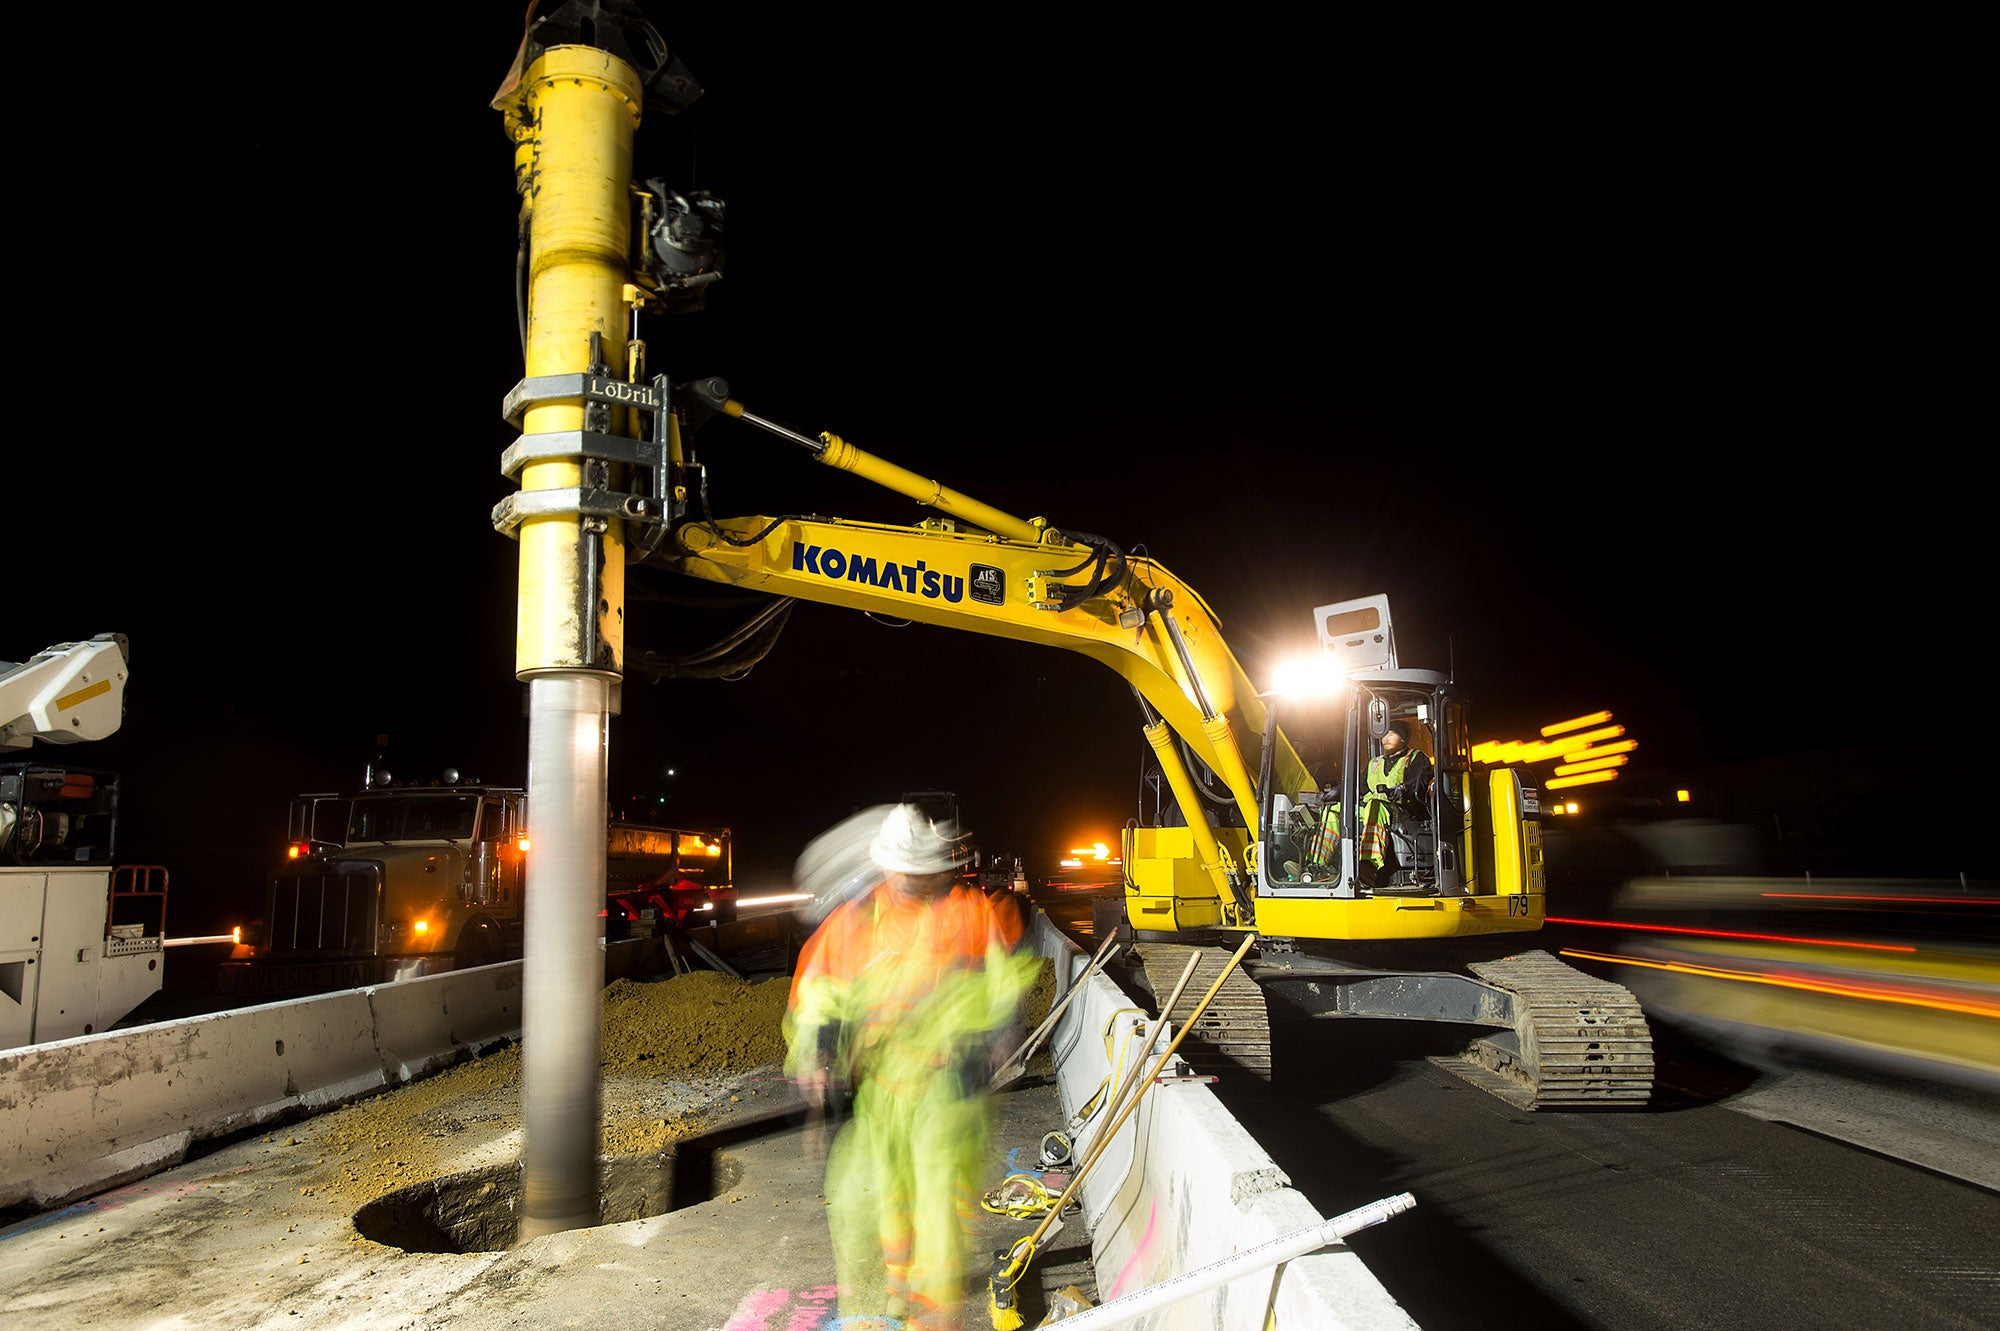 Construction crews use an excavator in pre-drilling activities for express lane sign foundations.